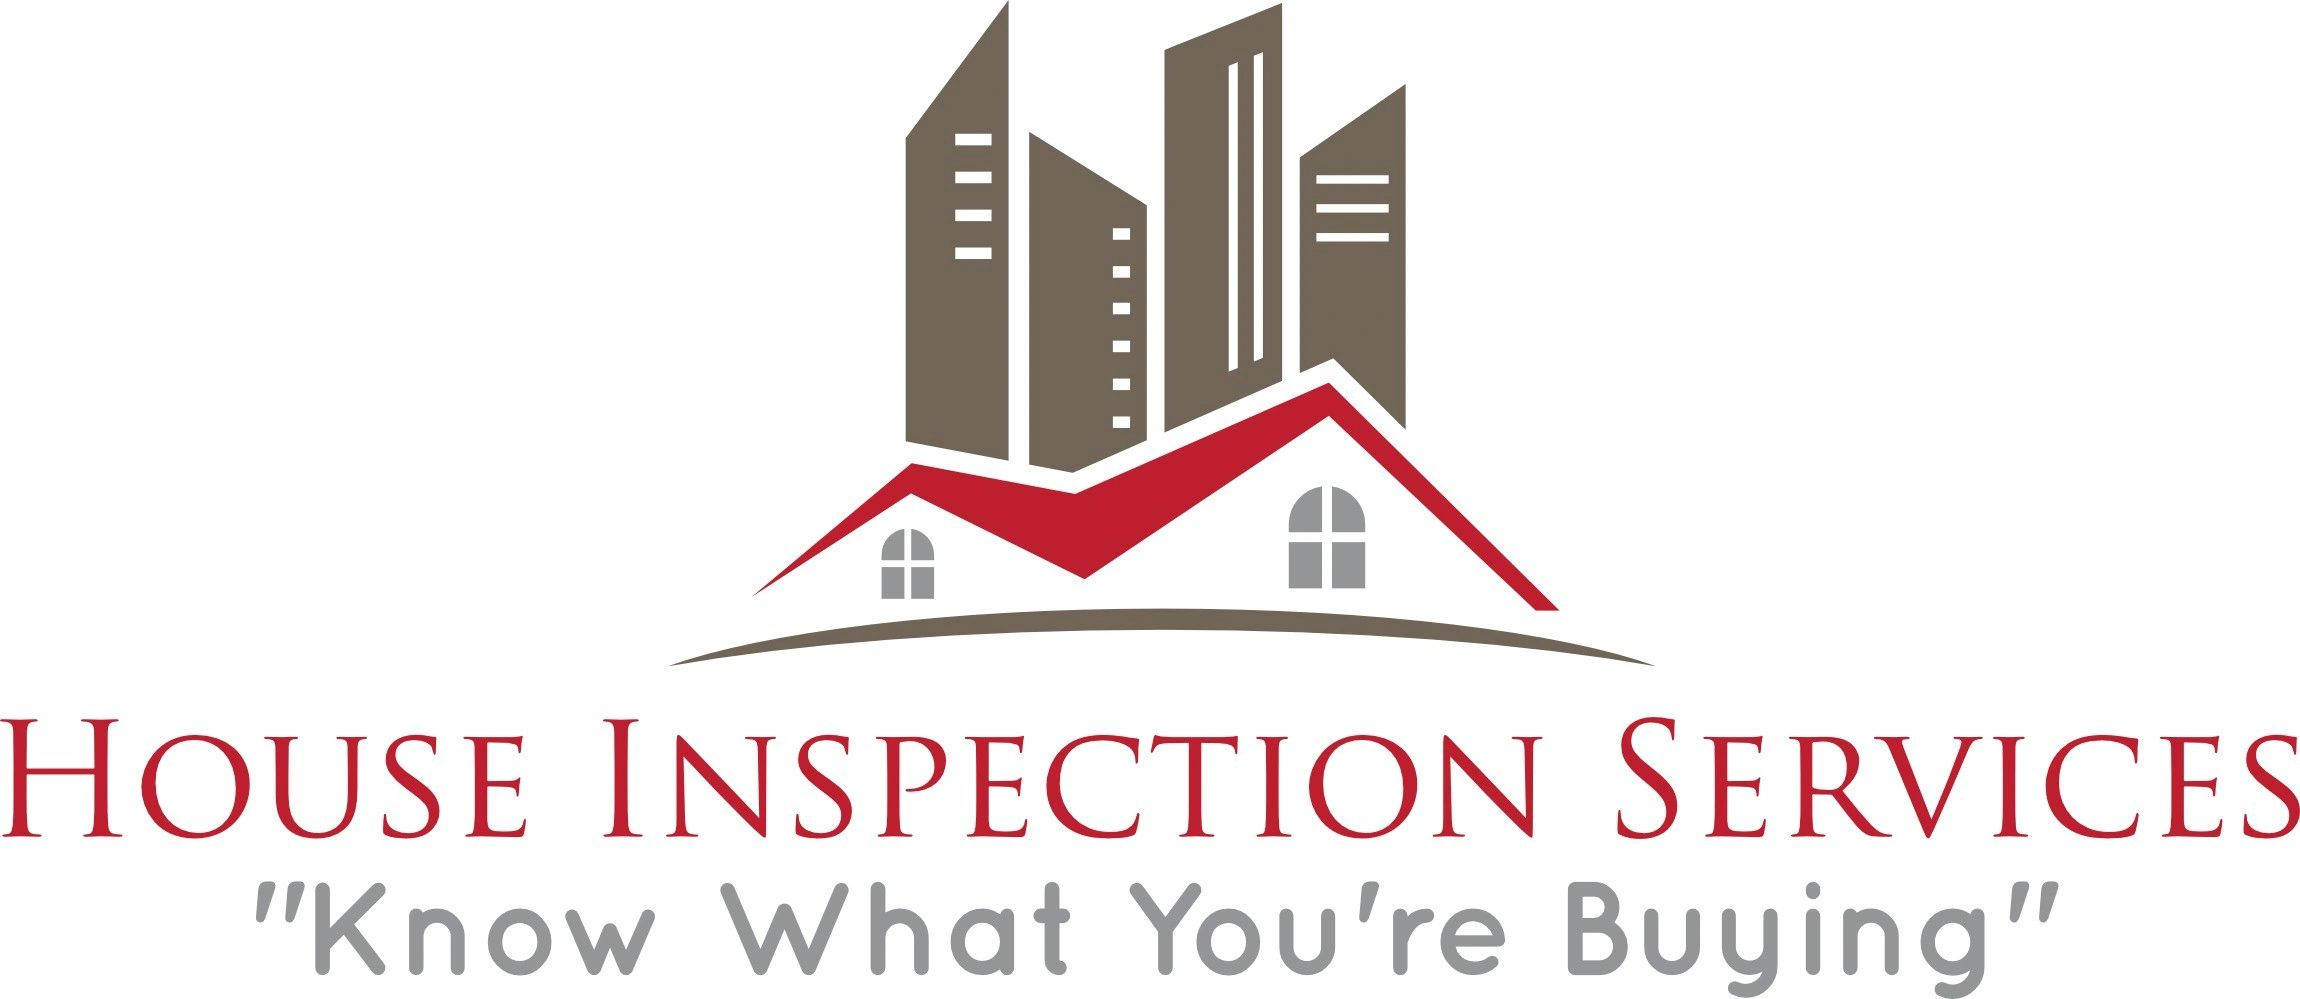 Home Inspector - House Inspection Services | House Inspection Services